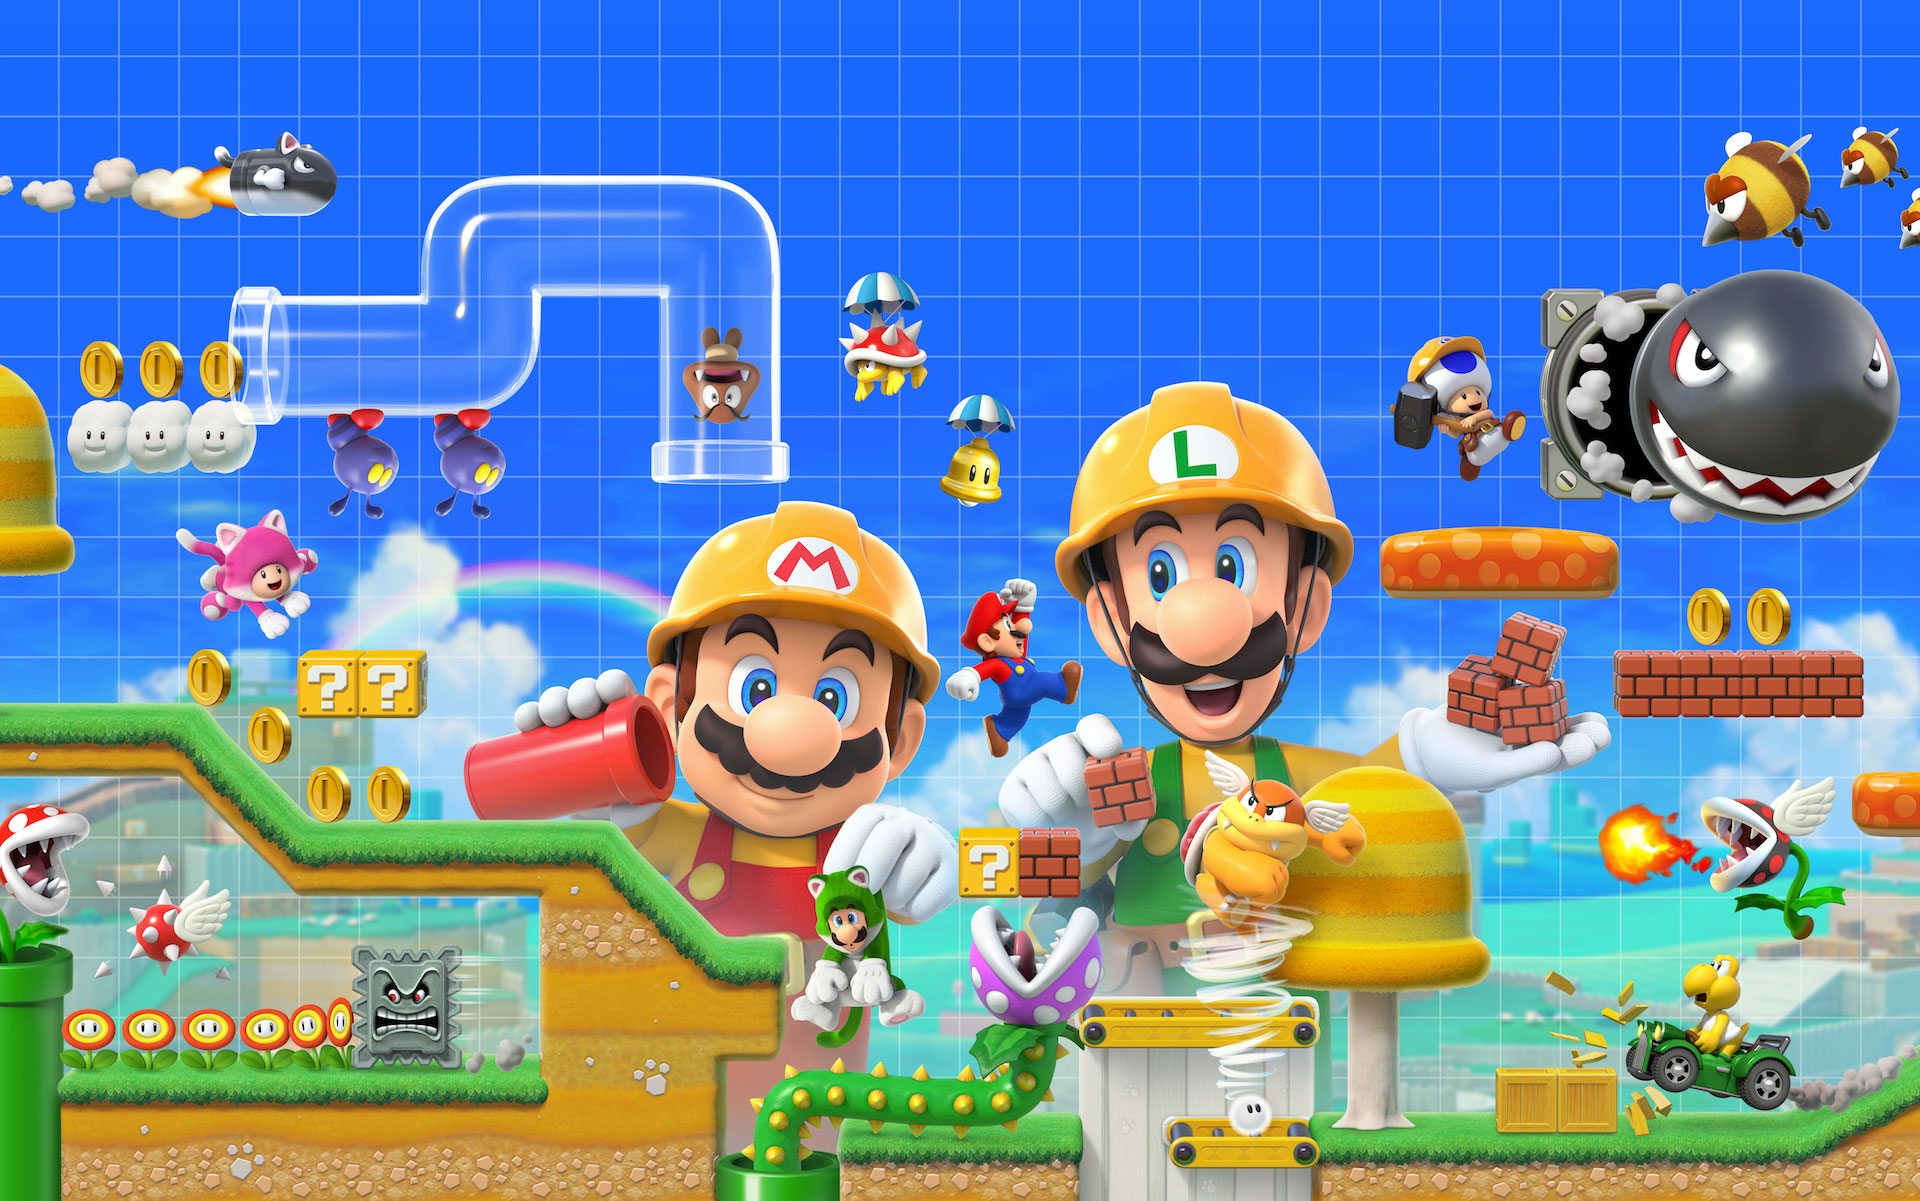 Nintendo deletes level from top Mario Maker 2 player for mysterious reasons